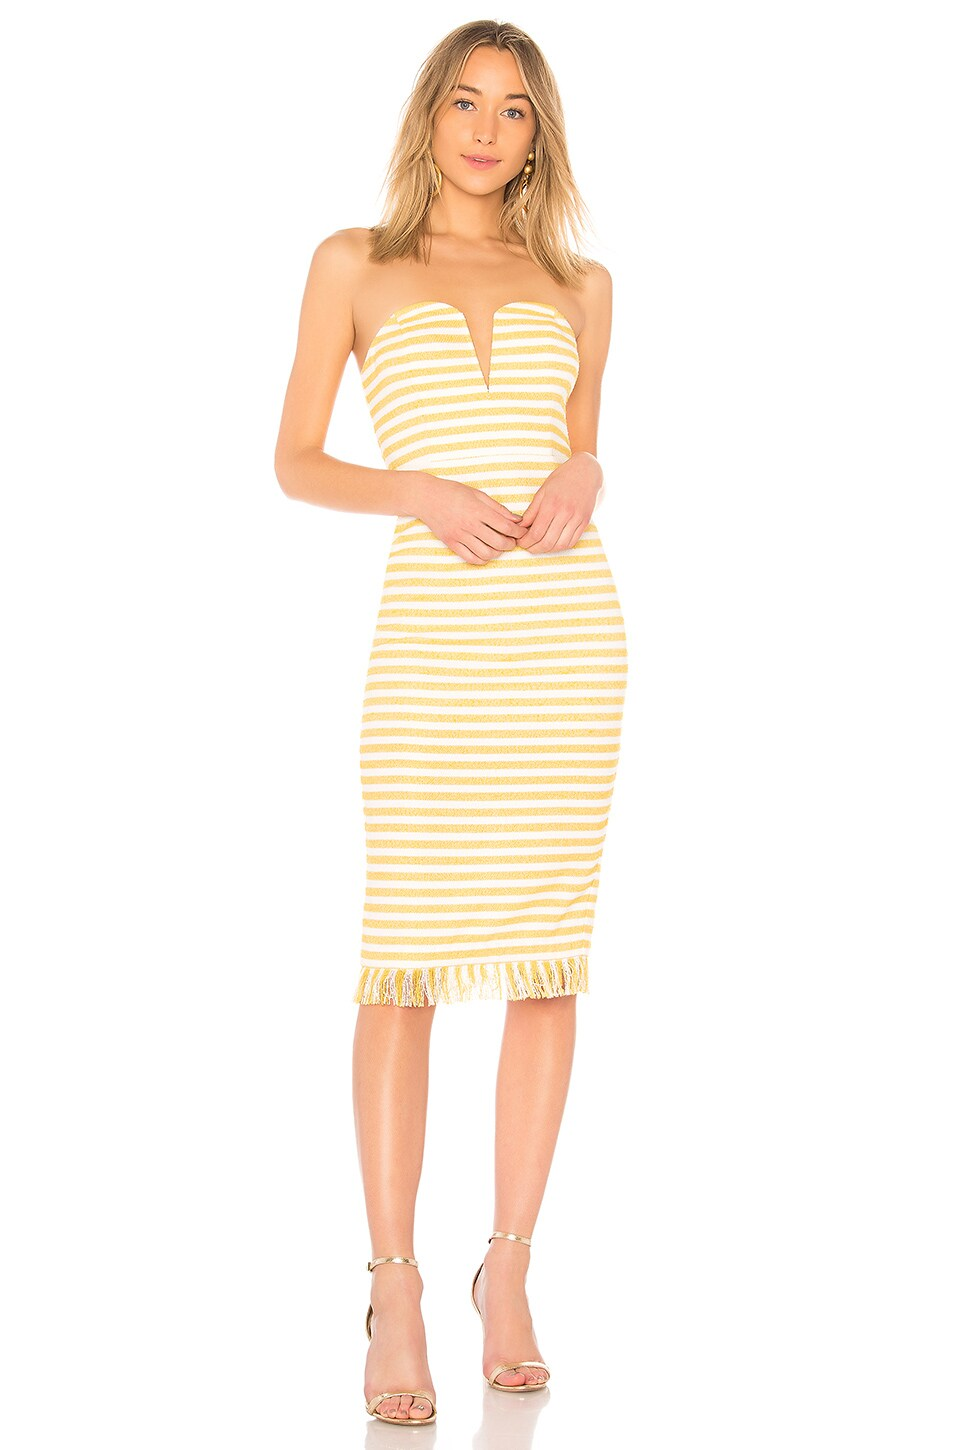 LPA Dress 691 in Creamsicle